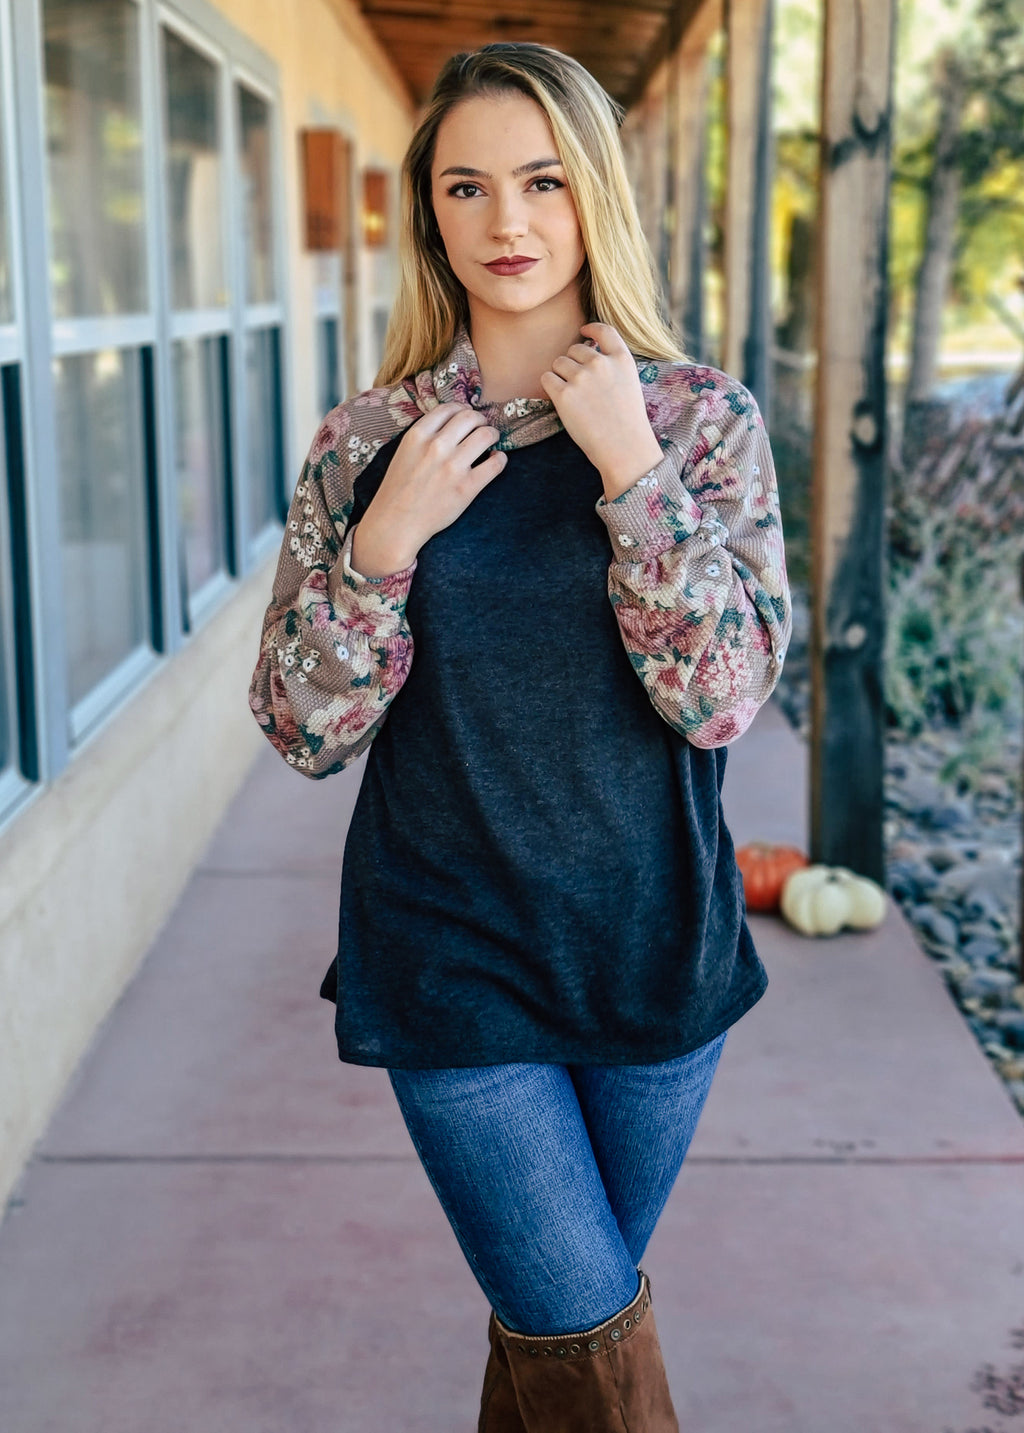 Taupe & Charcoal Floral Cowl Neck Top on blonde model with denim jeans and brown boots